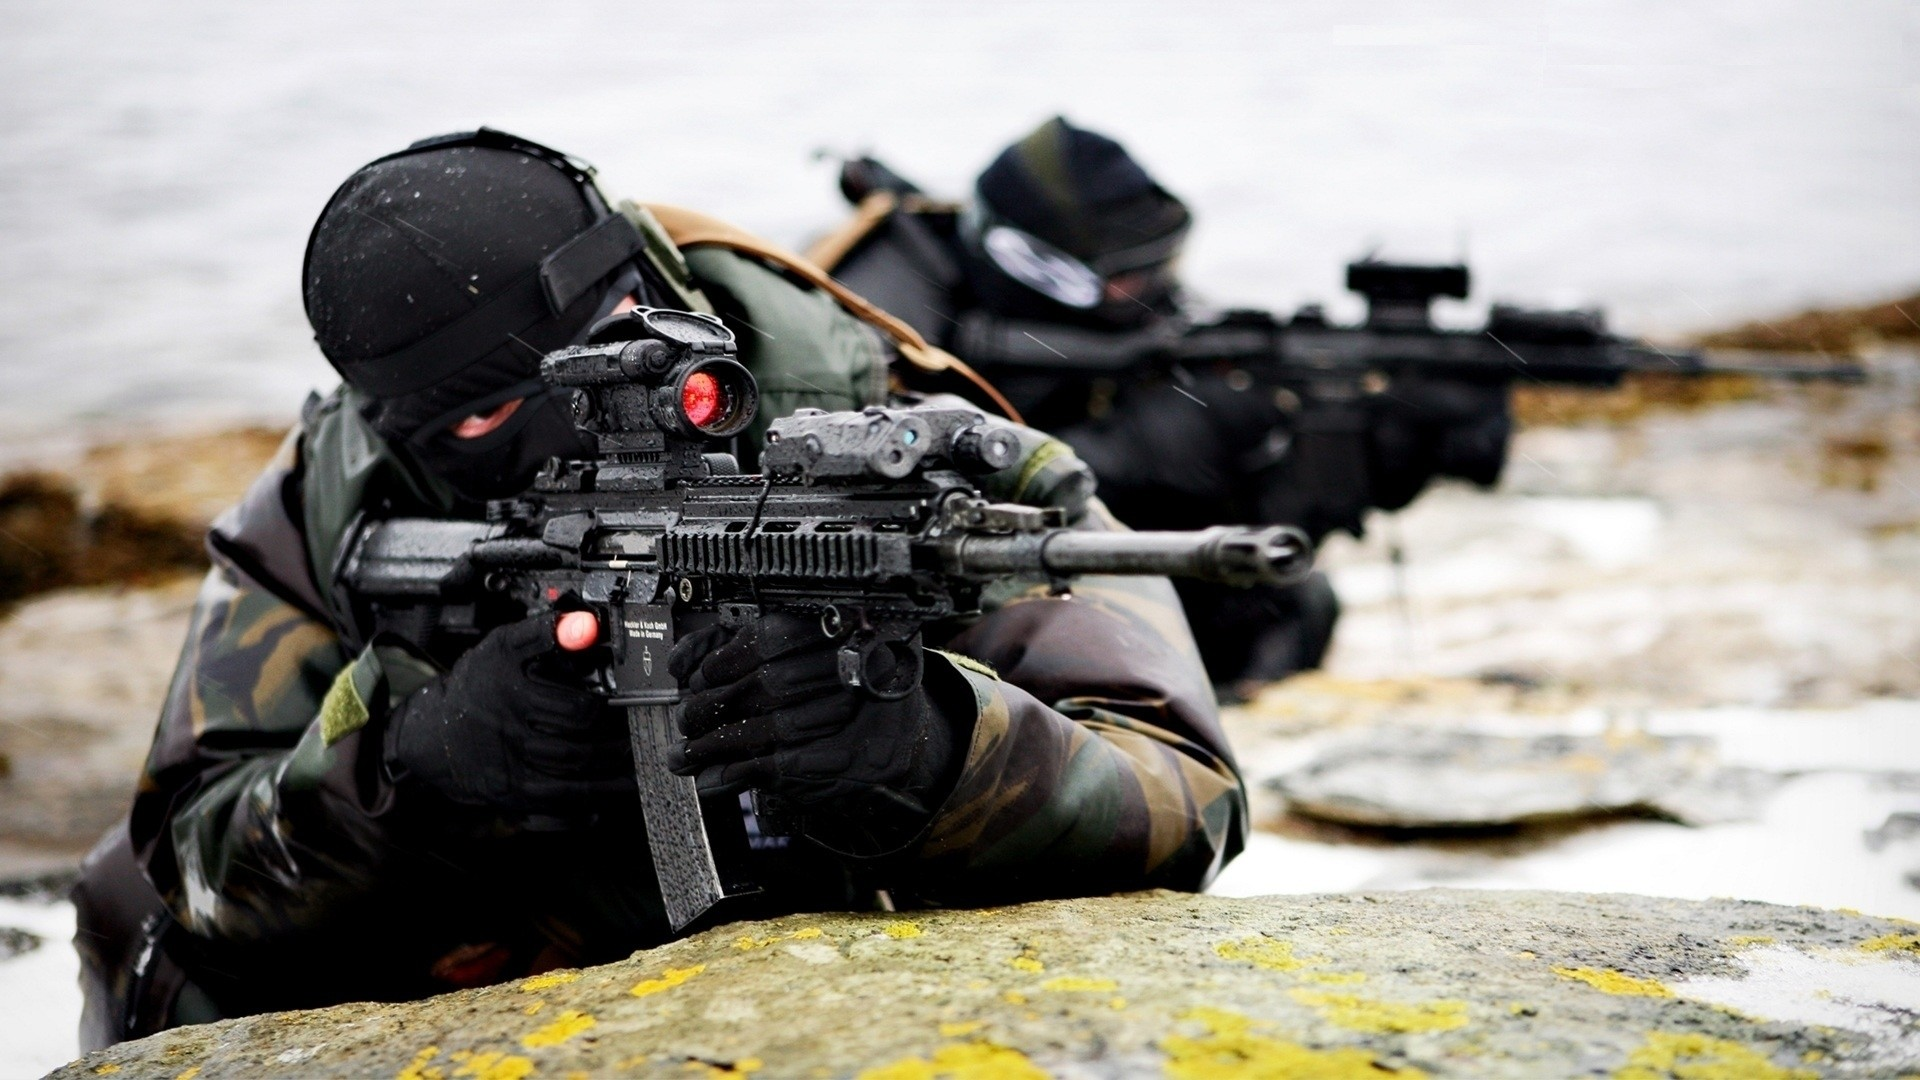 1920x1080 military norwegian hk416 future weapons aimpoint comp m4 HD Wallpapers